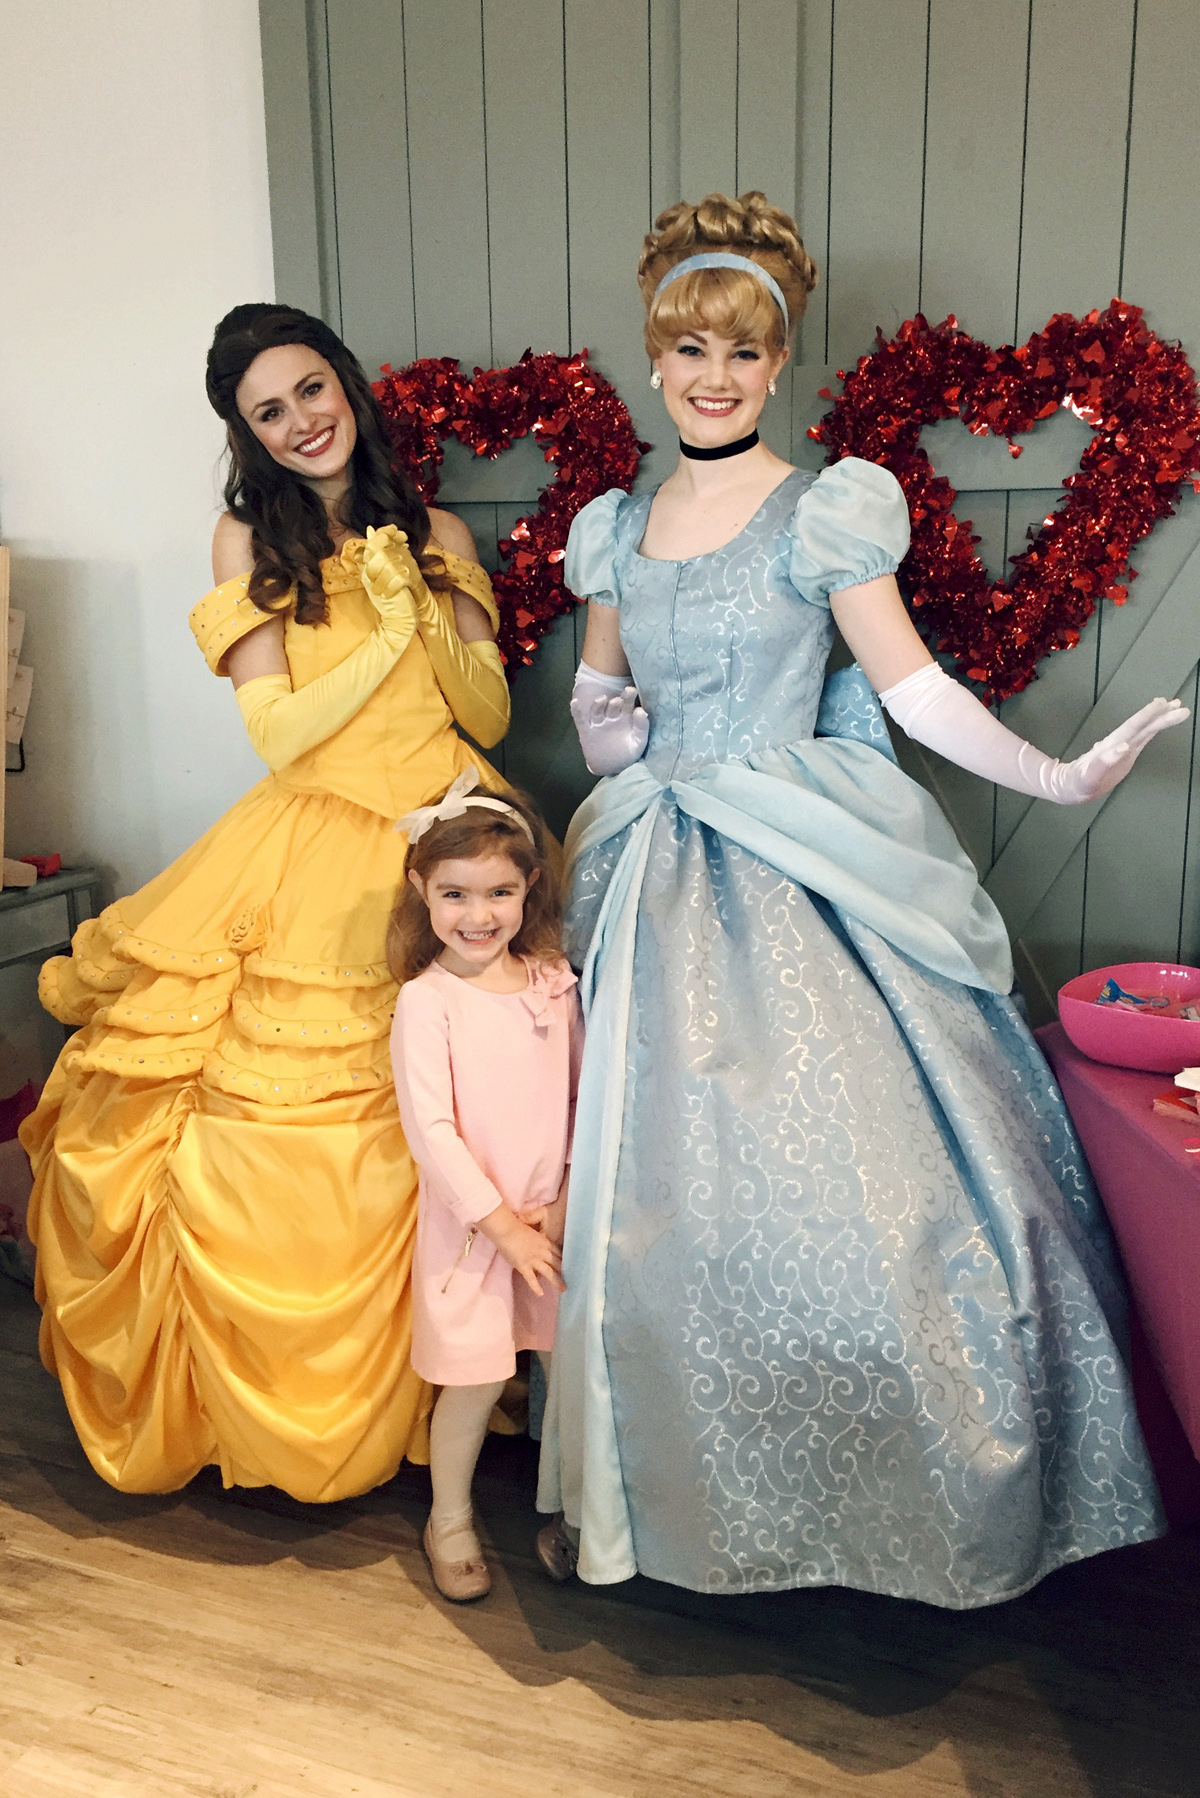 a little saturday with princesses!